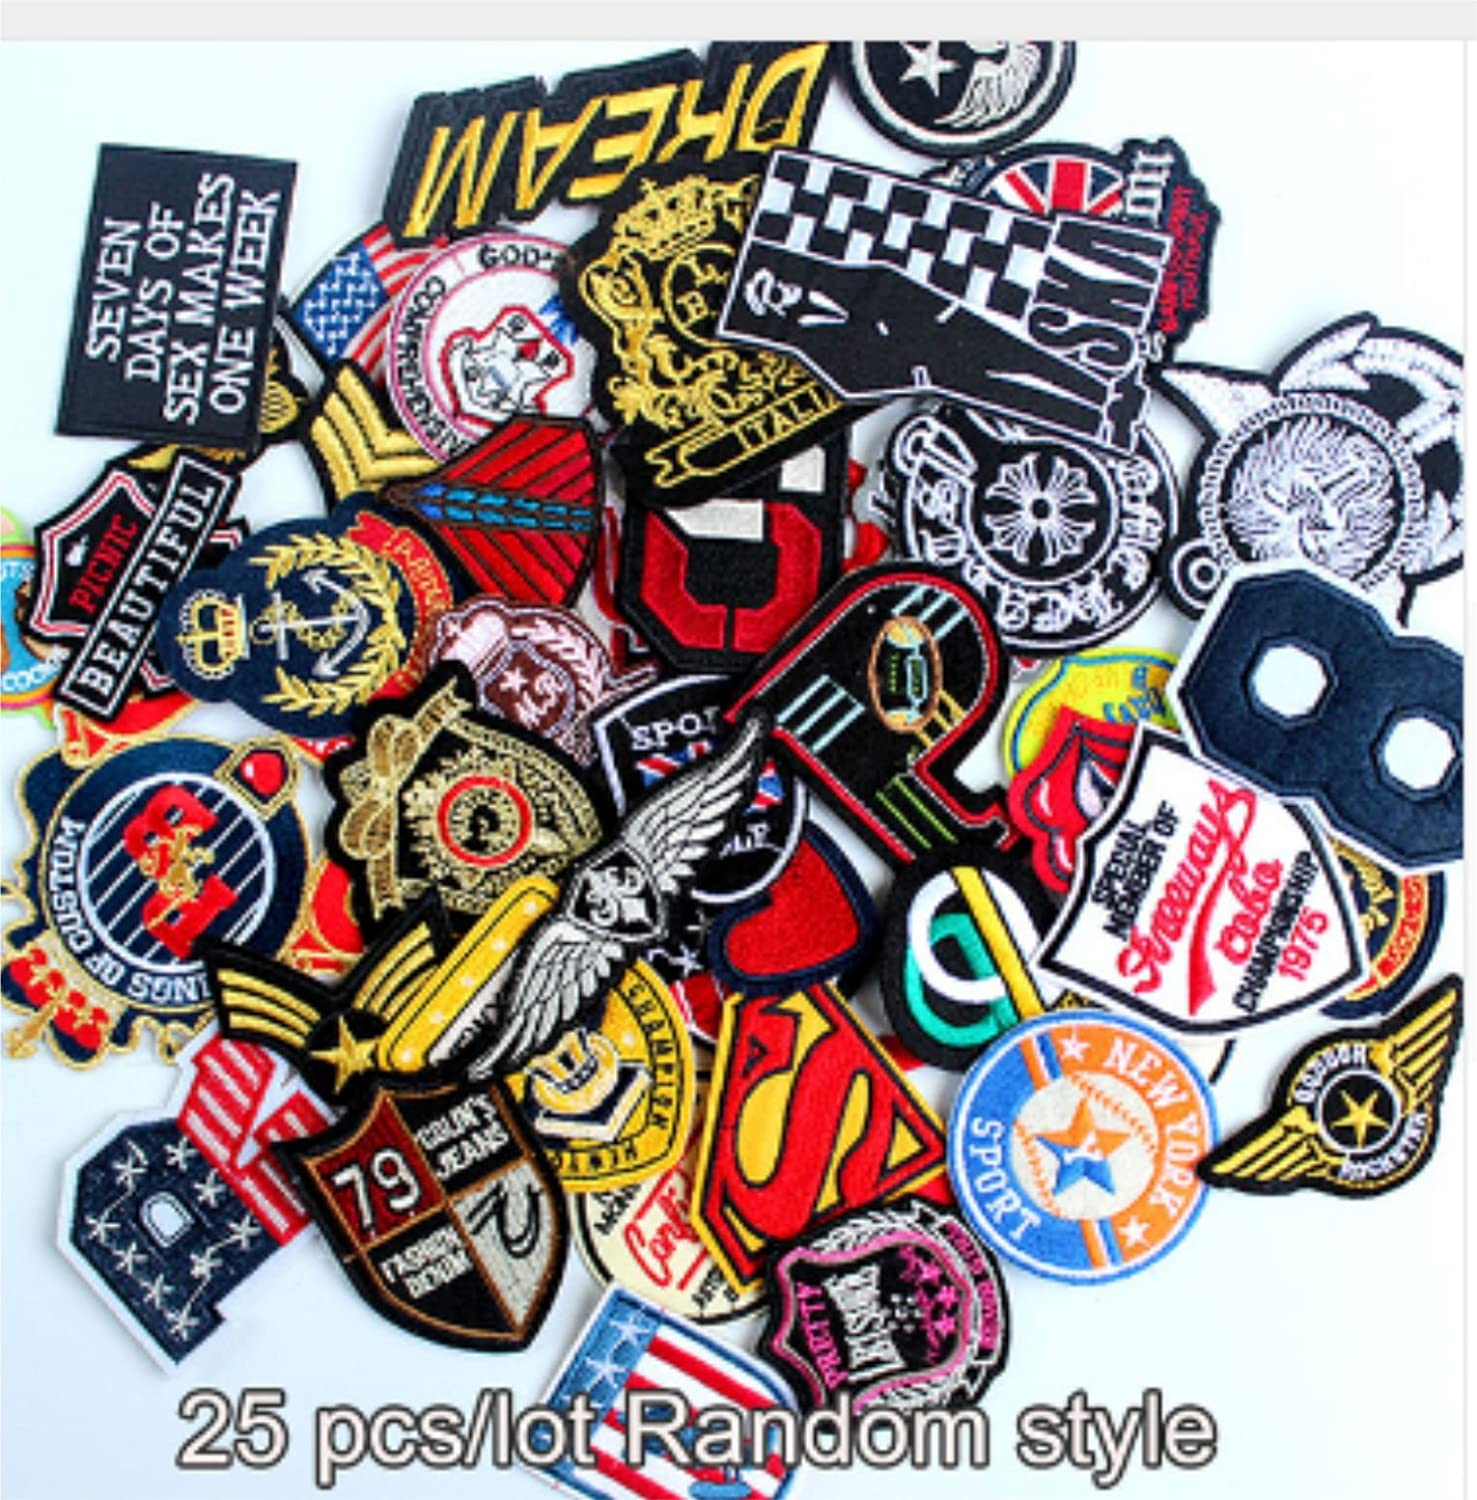 Multi Color Wholesale Patches Iron On Embroidered Patches Assorted Random Patches Mixed Lot Appliques (25 PC,s)